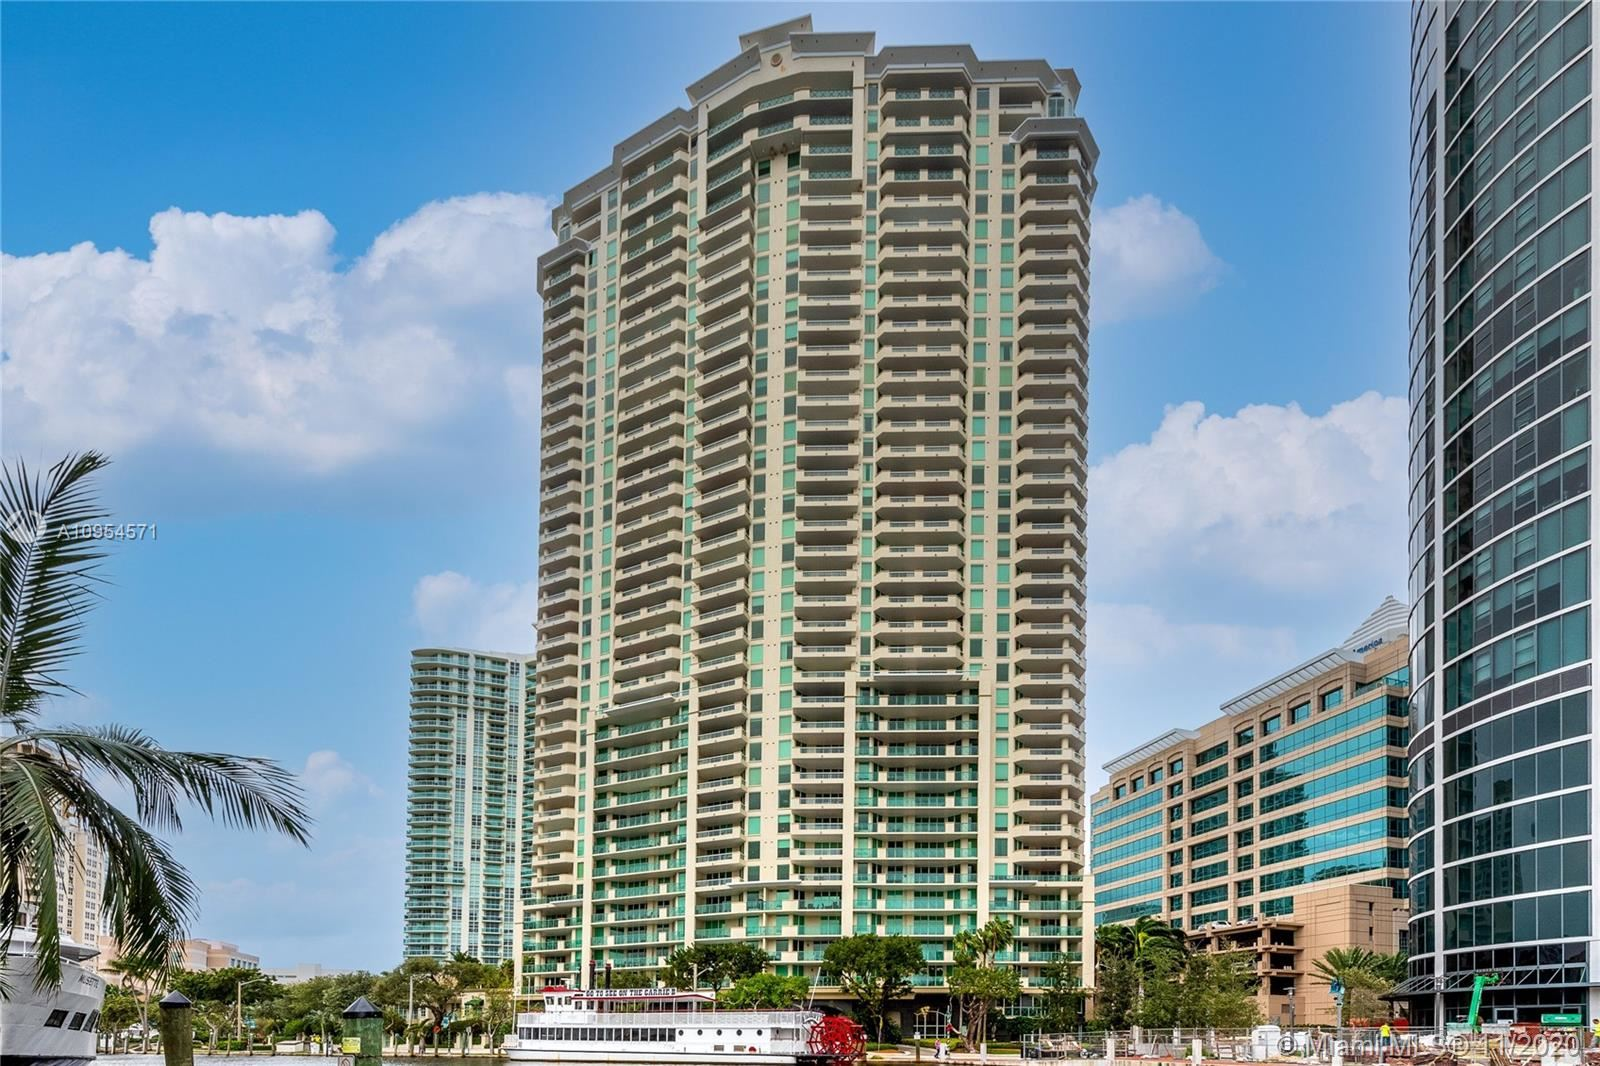 Photo of 411 N New River Dr E #3601, Fort Lauderdale, FL 33301 (MLS # A10954571)